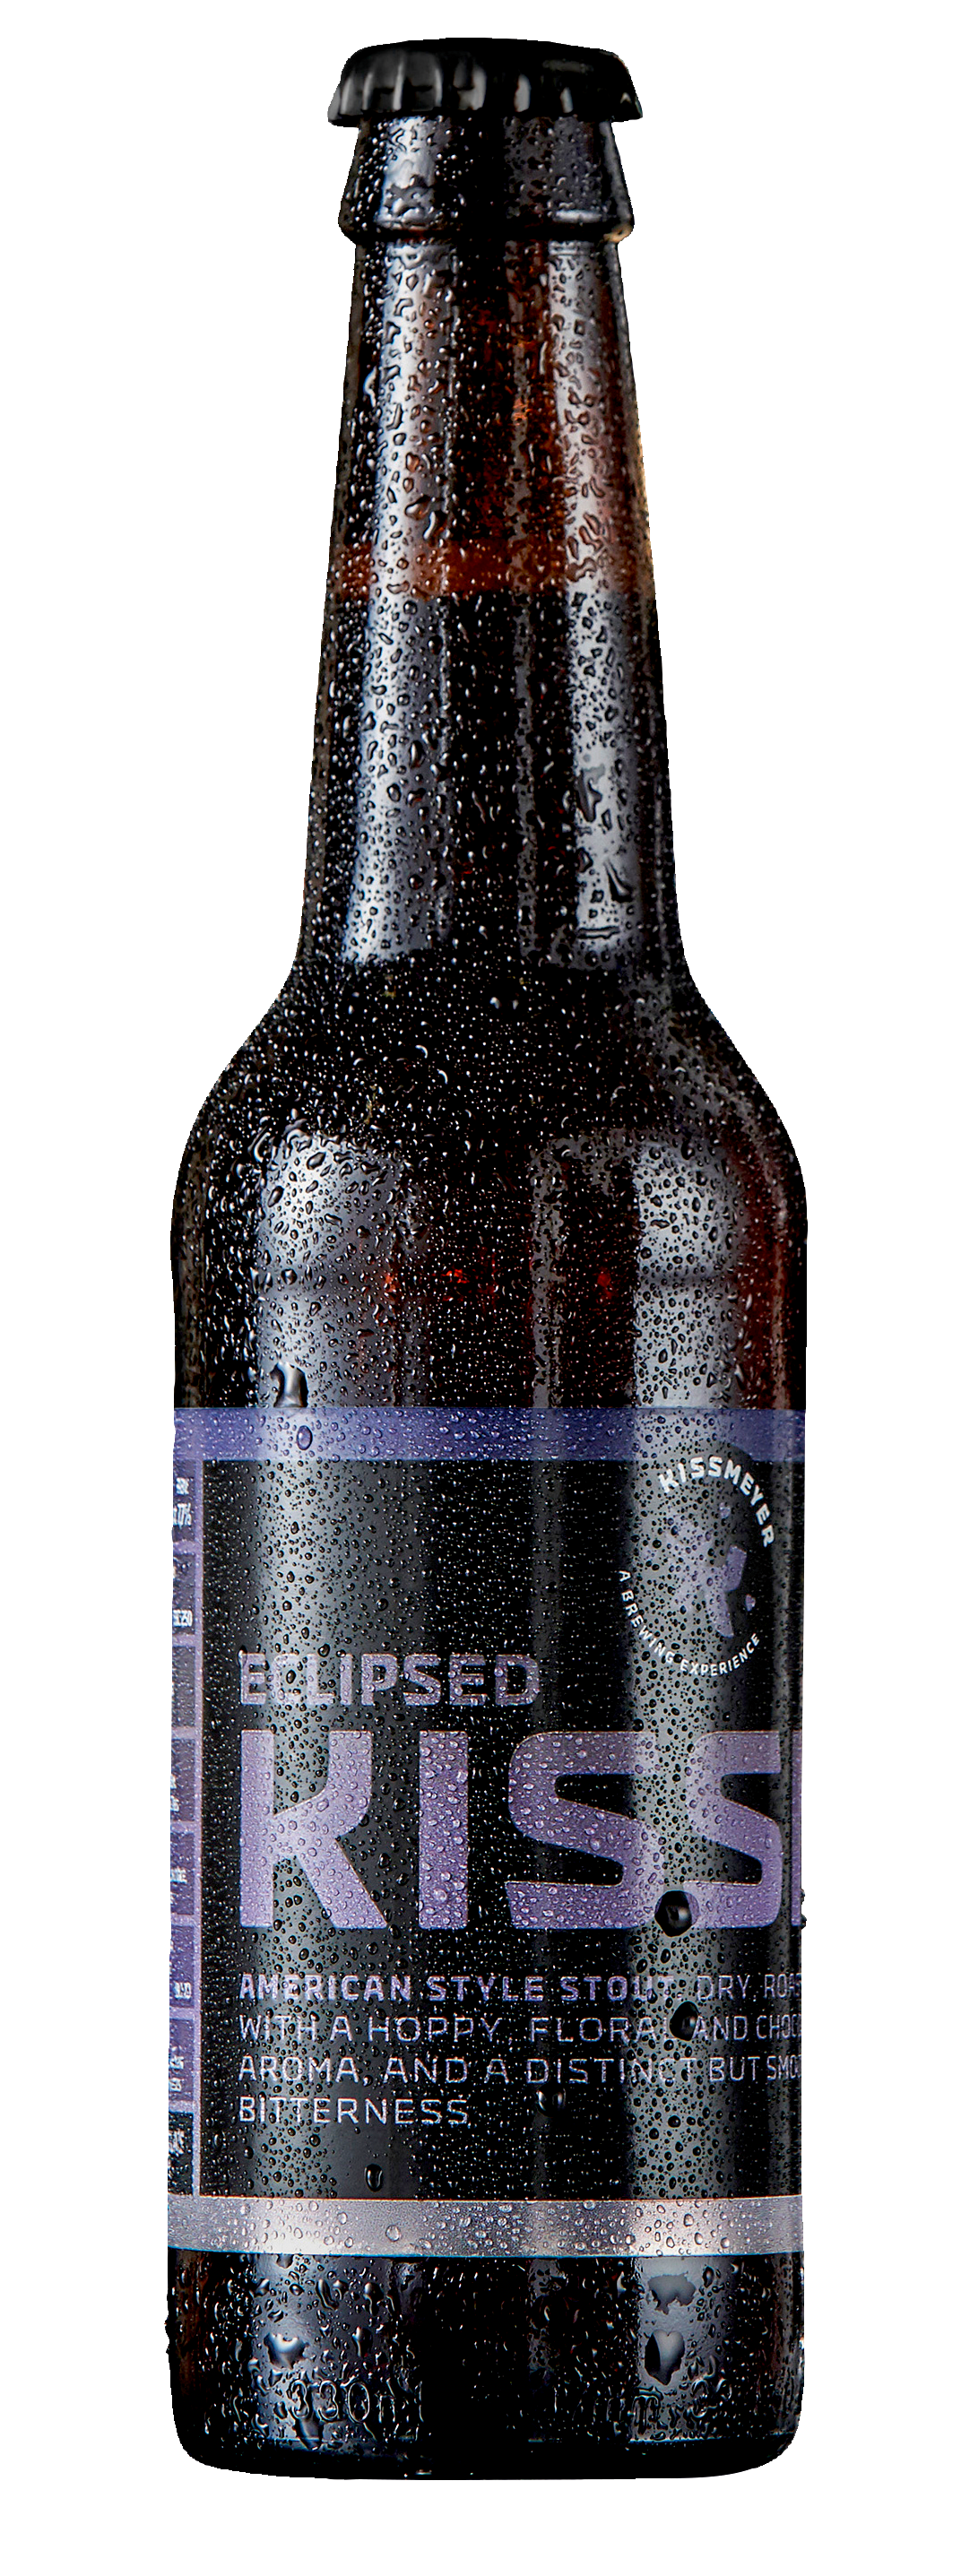 Eclipsed Kiss